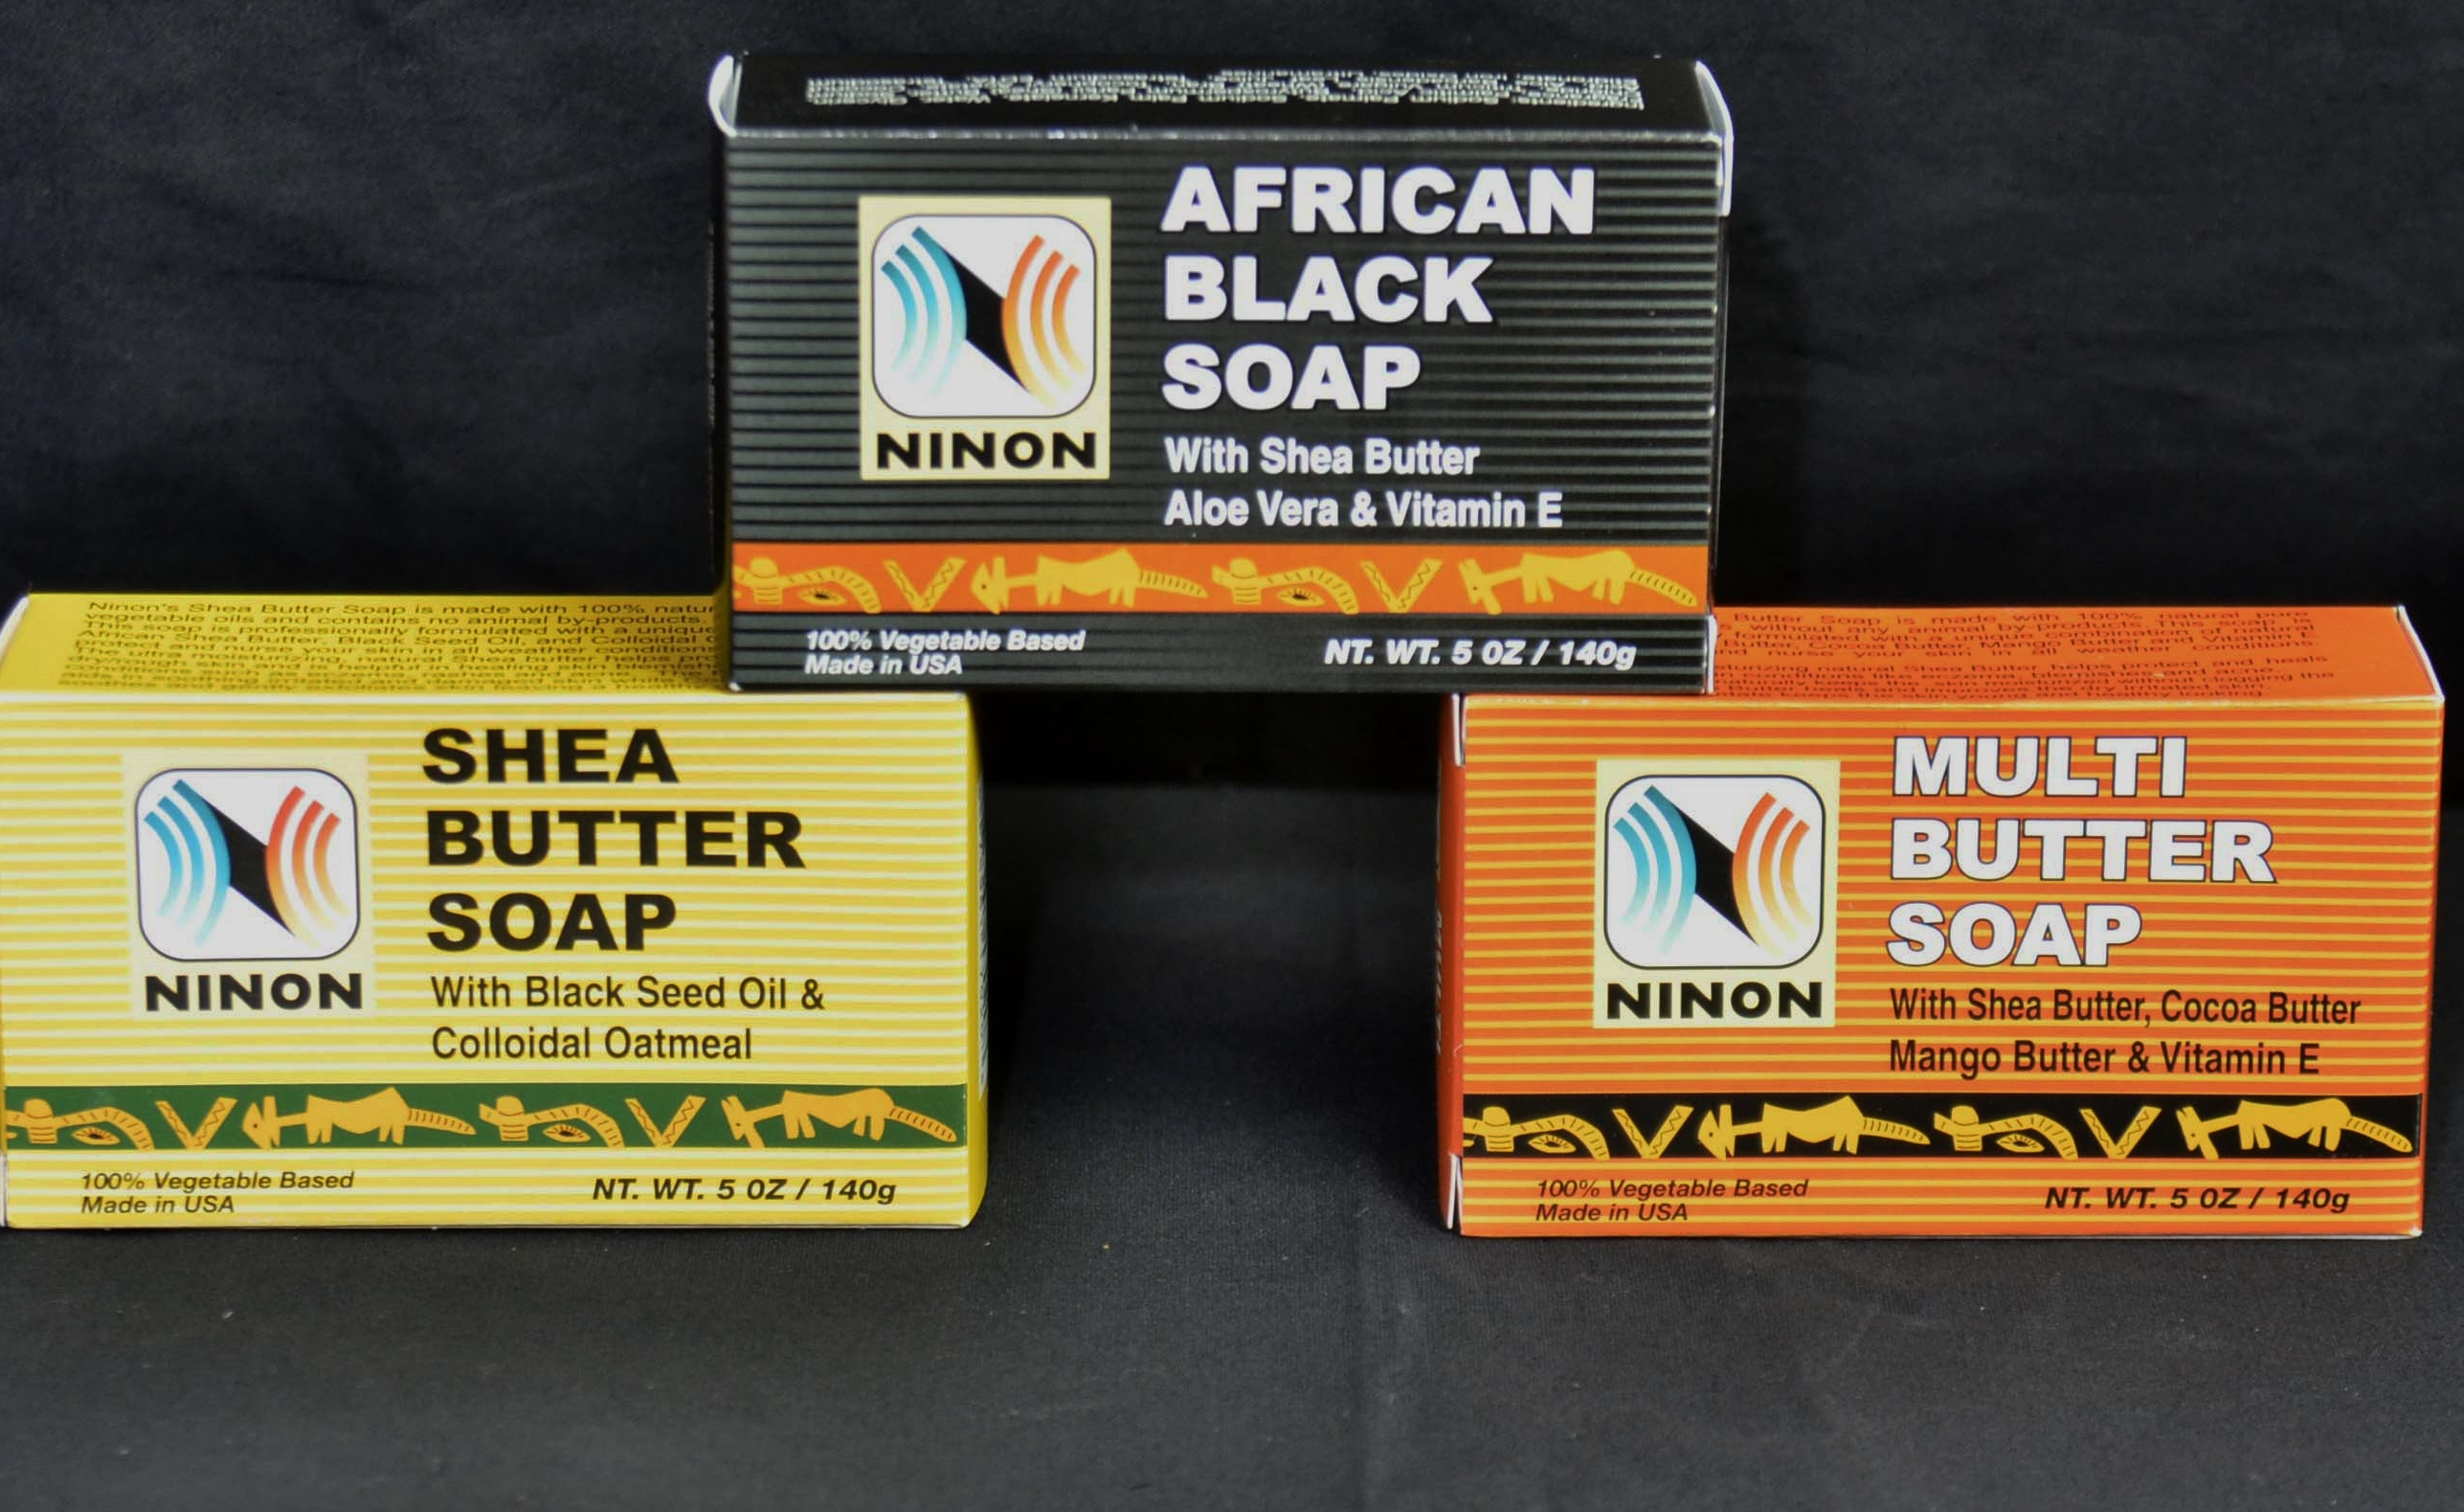 Pure African Soap Black Multi Butter Shea Butter